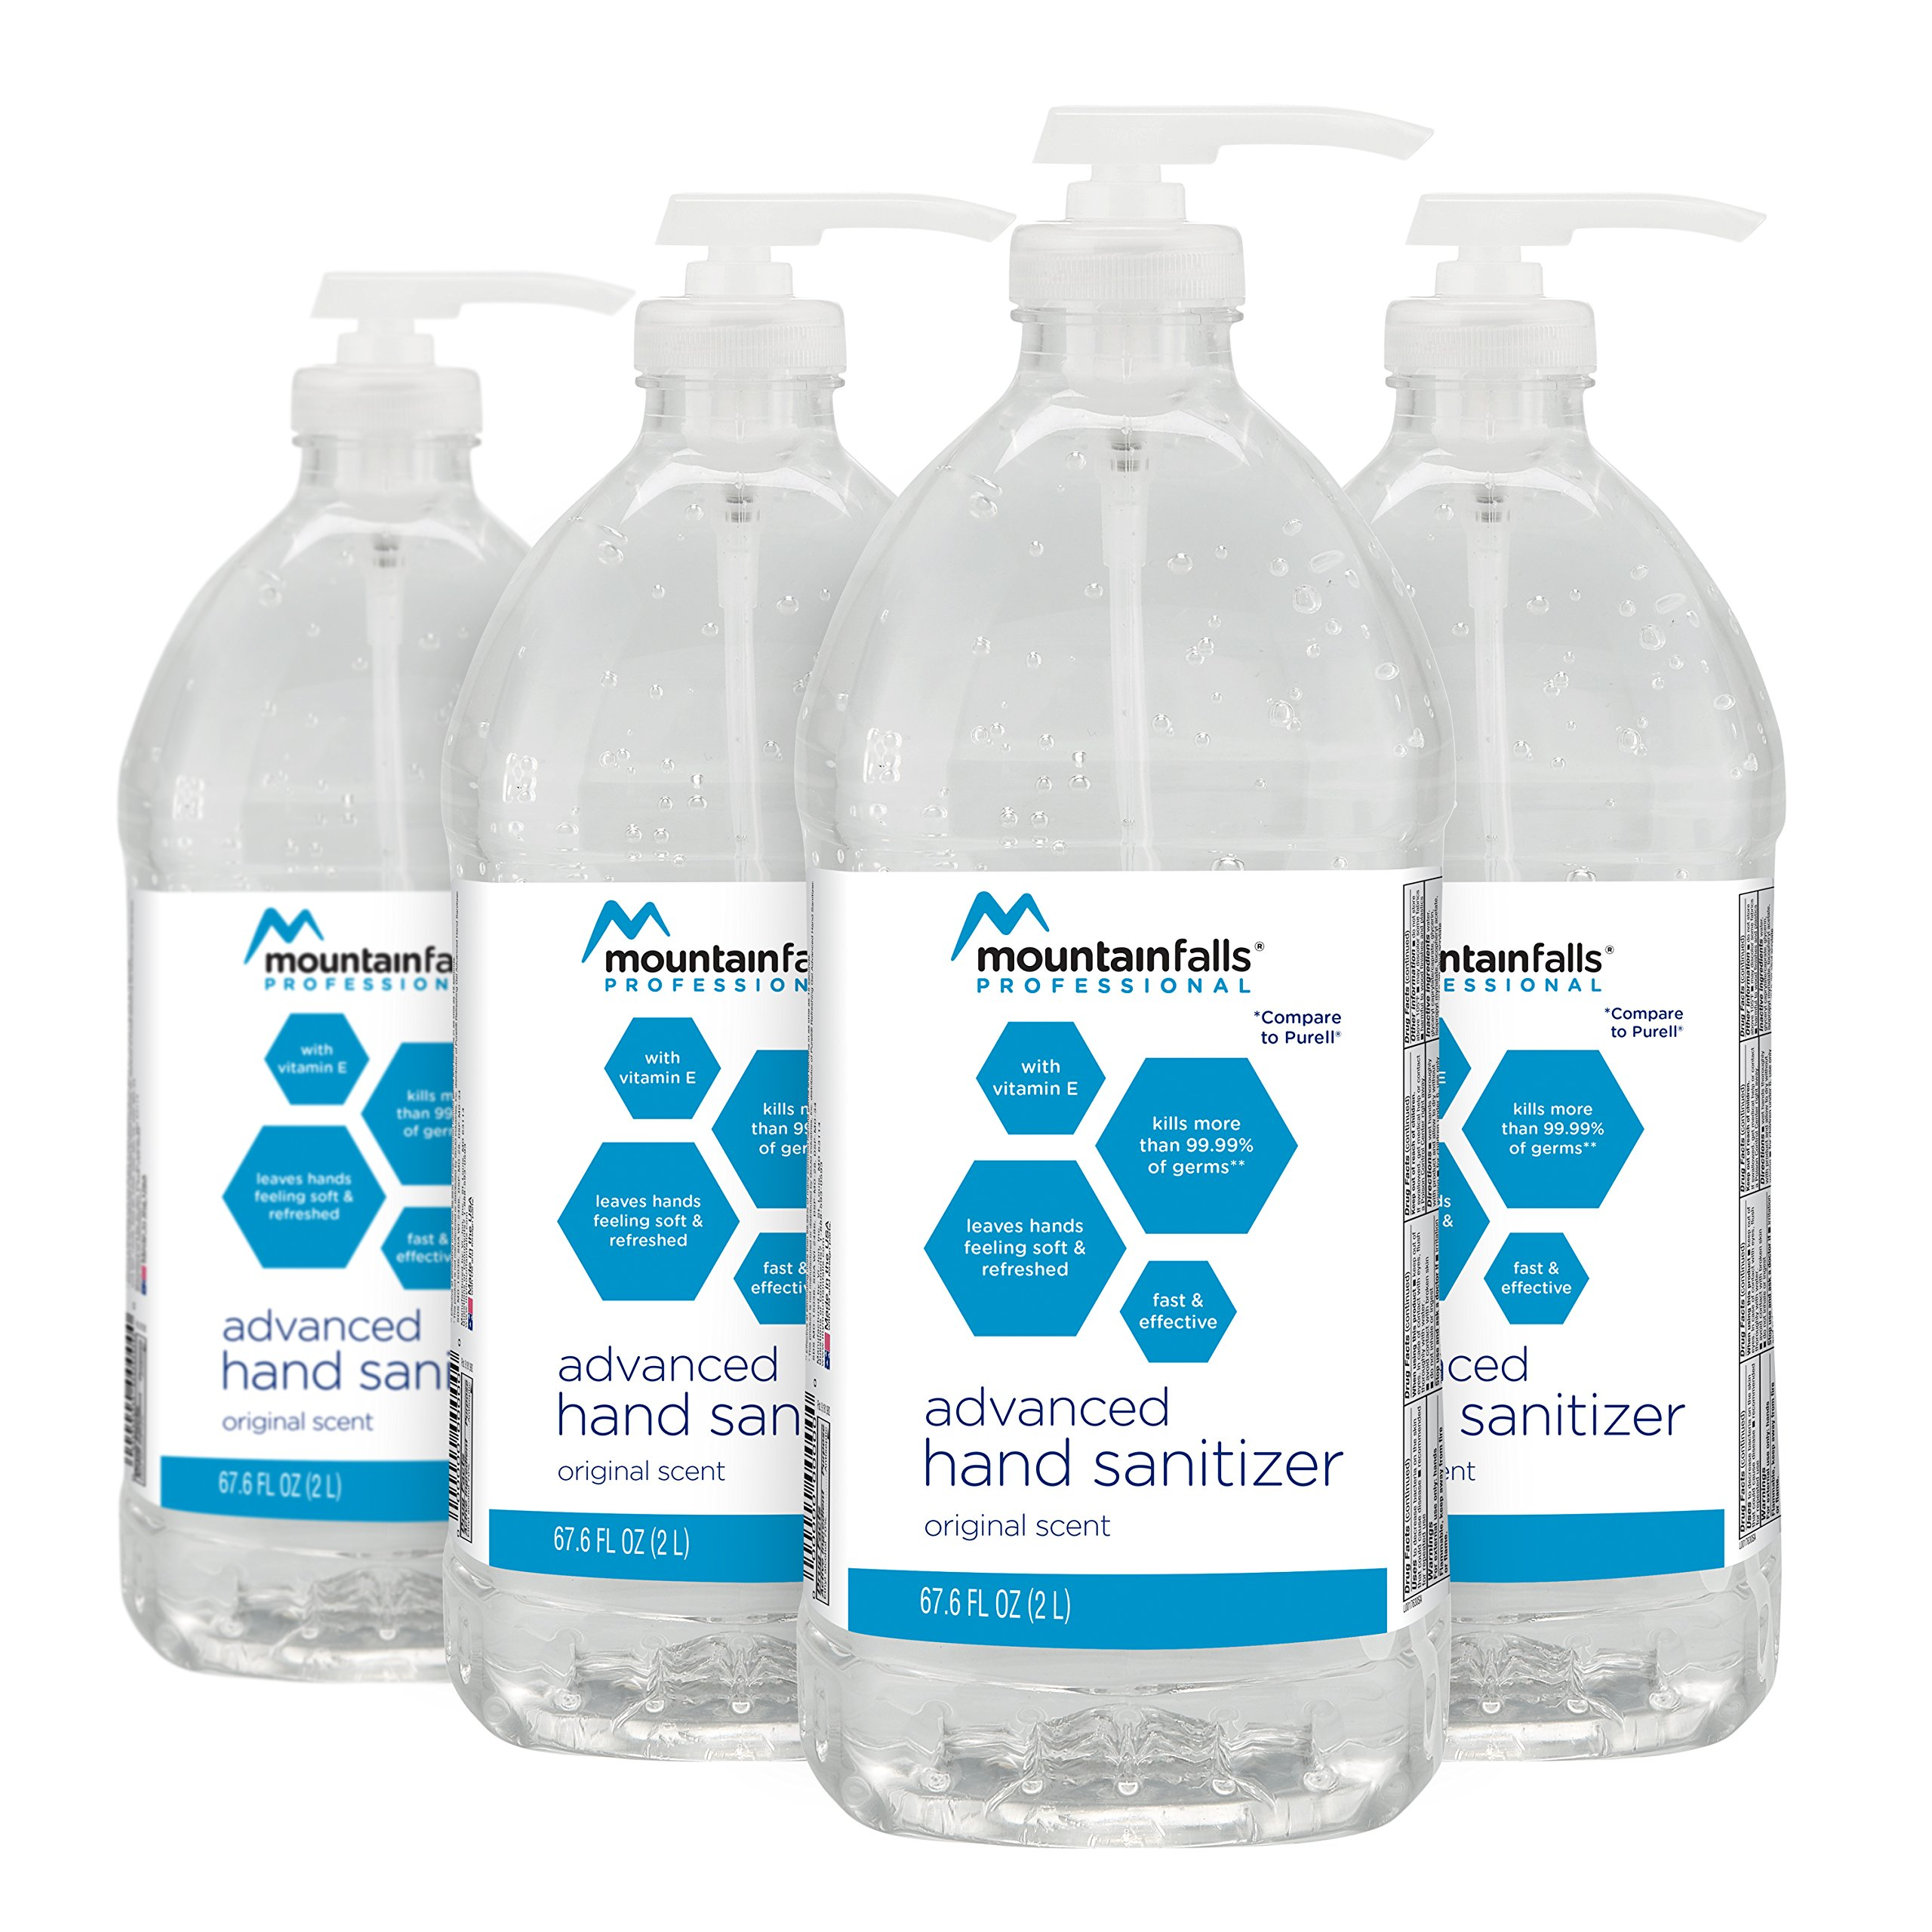 Mountain Falls Professional Advanced Original Hand Sanitizer 70% Isopropyl Alcohol, 67.6 Fluid Ounce (Pack of 4)